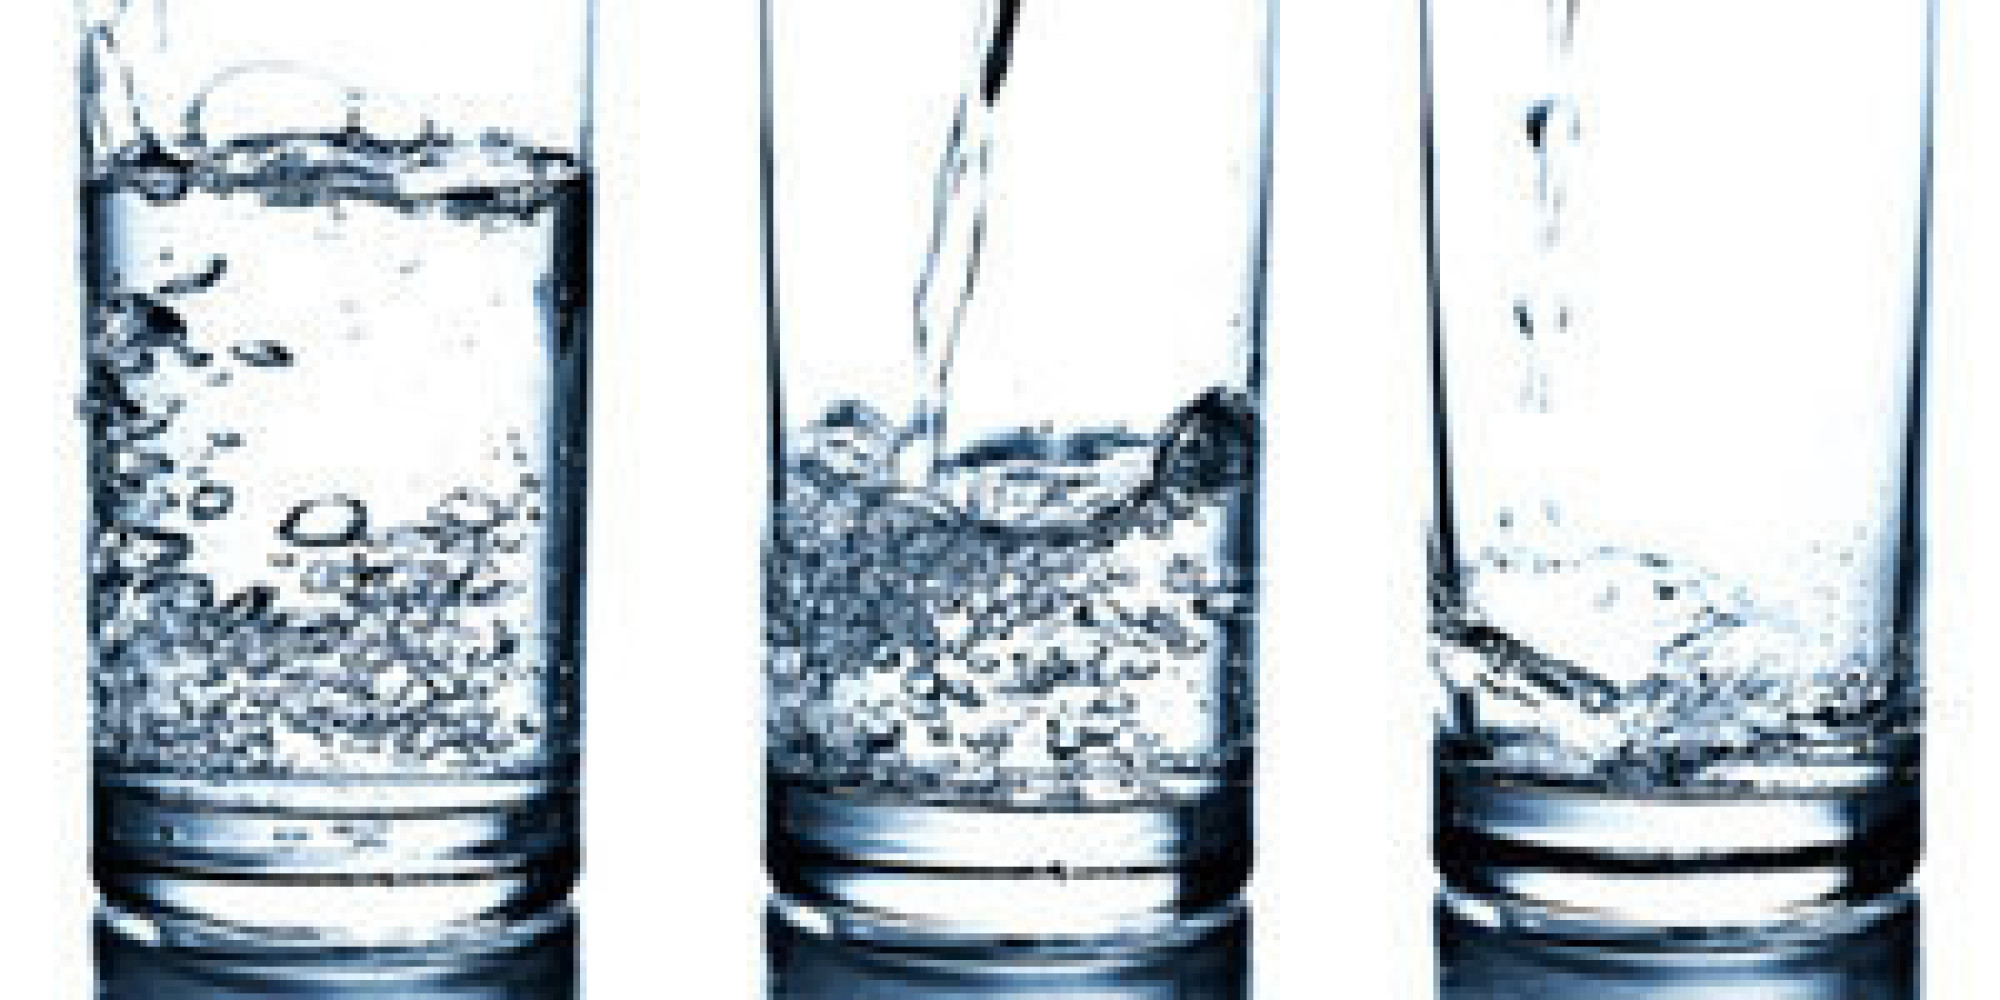 7 Surprising Dos And Don'ts For Drinking Water   HuffPost Full Glass Of Water Ounces